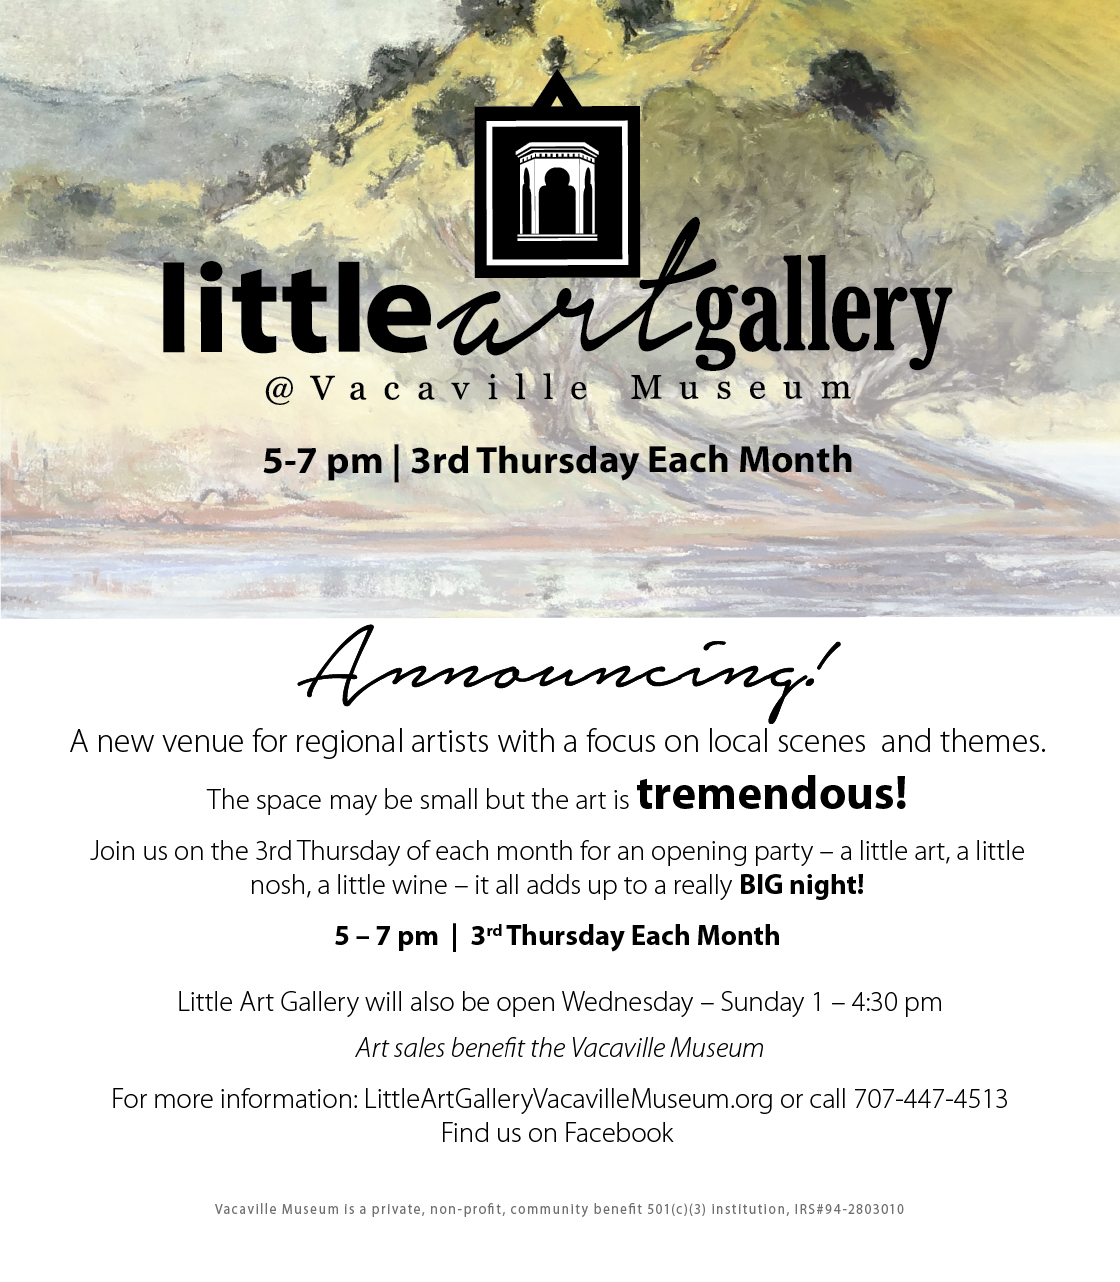 Flyer announcing the new little art gallery at the Vacaville Museum